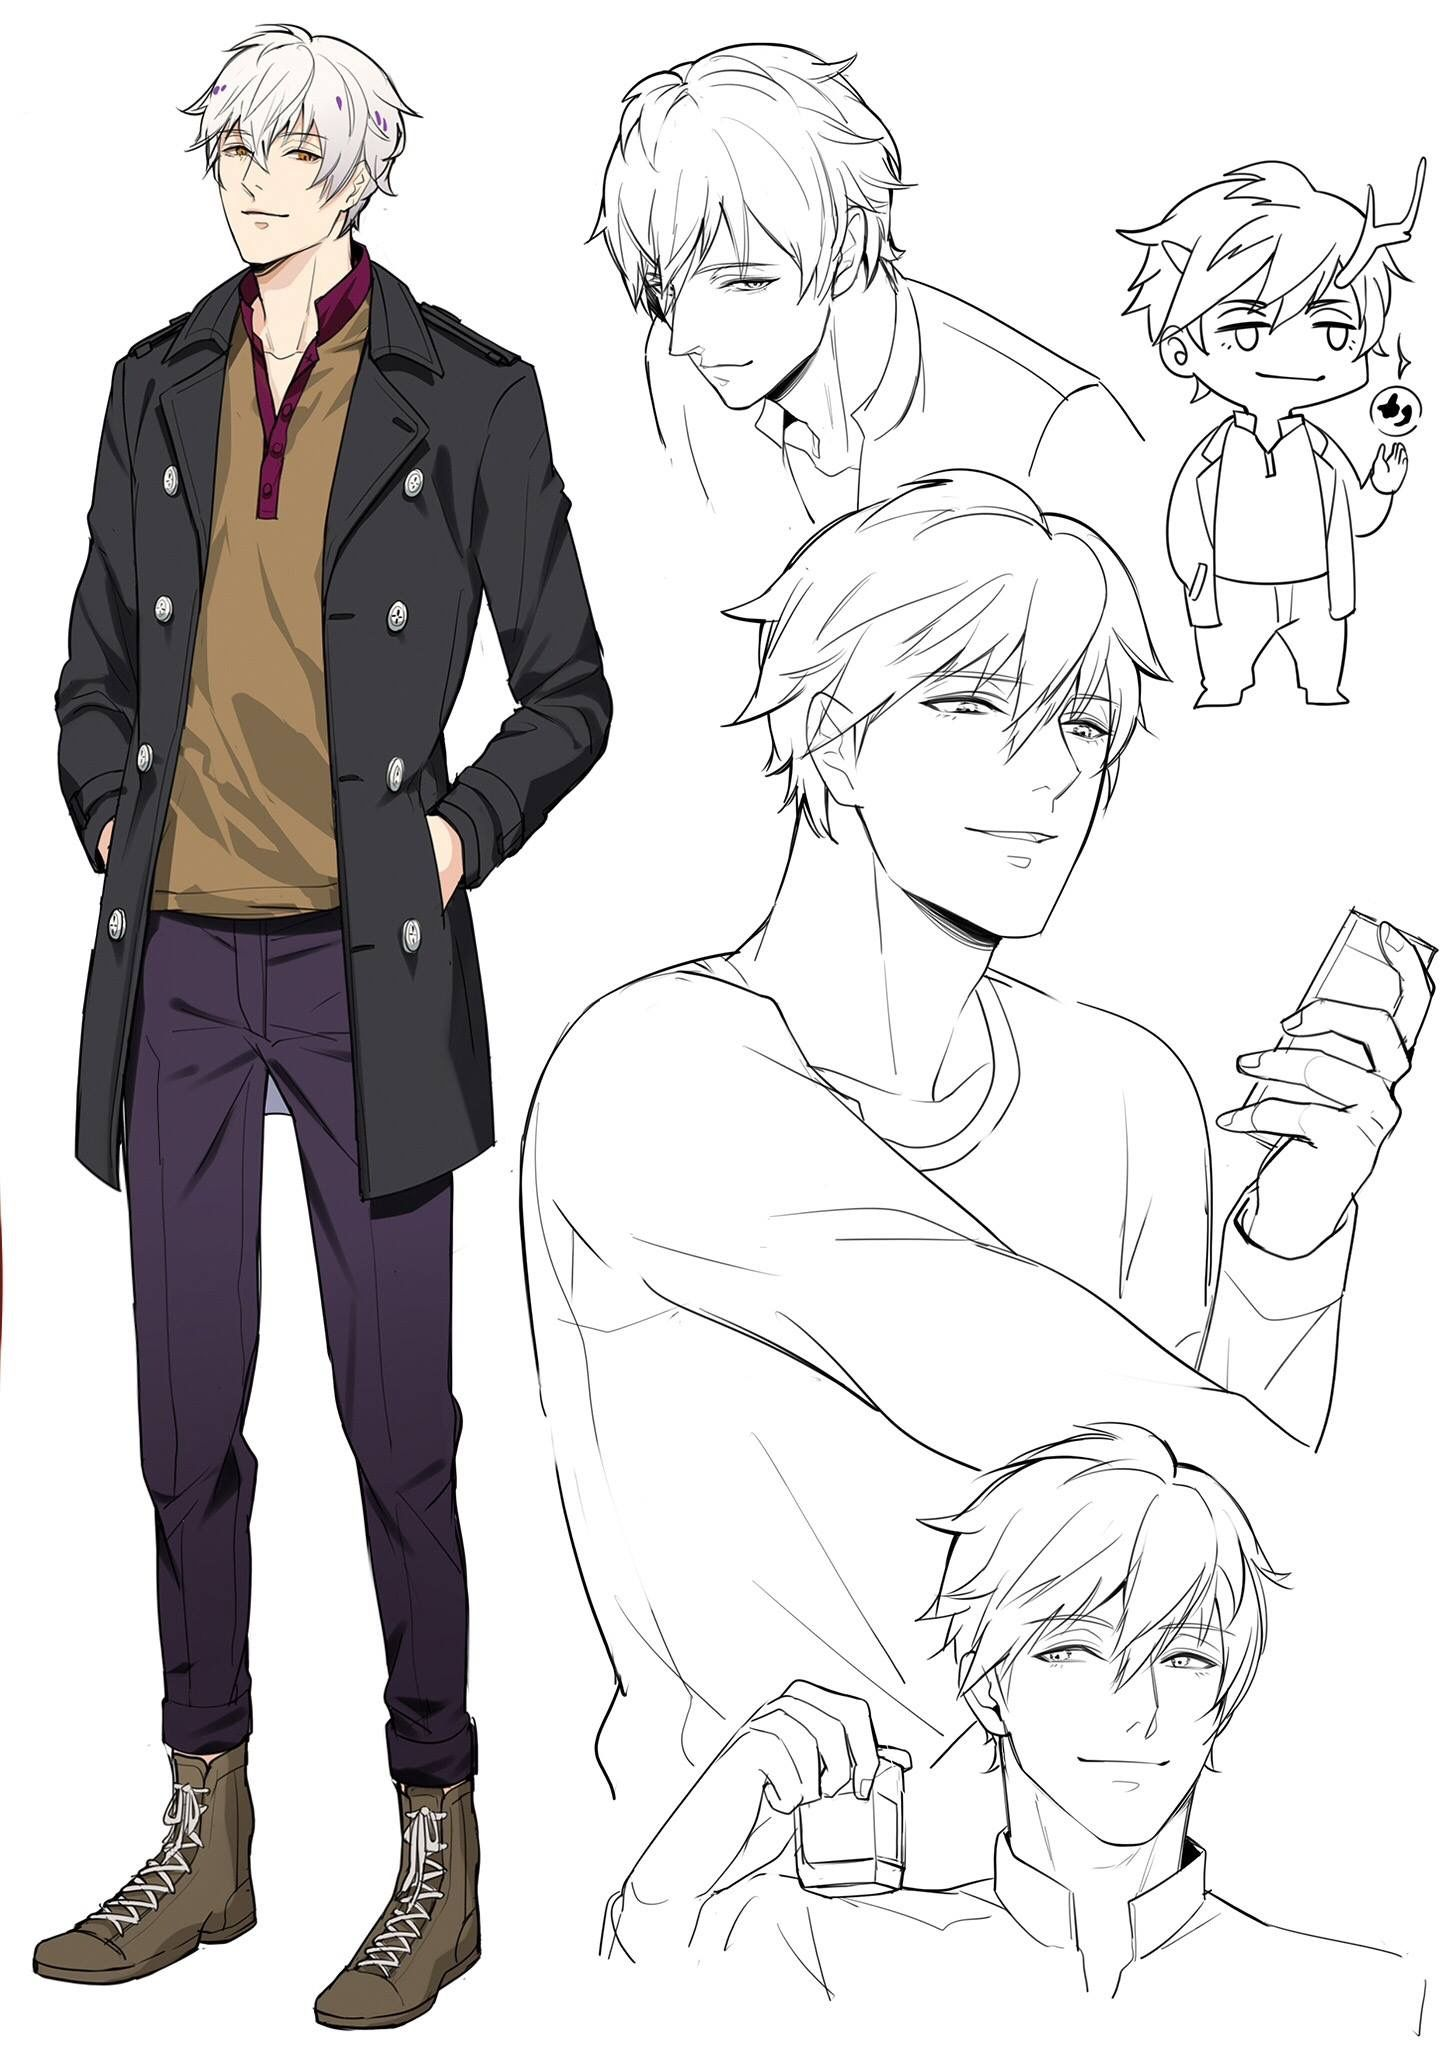 Pin By Ilham Abdul Halim On Uhbb Concept Art Characters Anime Character Design Anime Drawings Boy